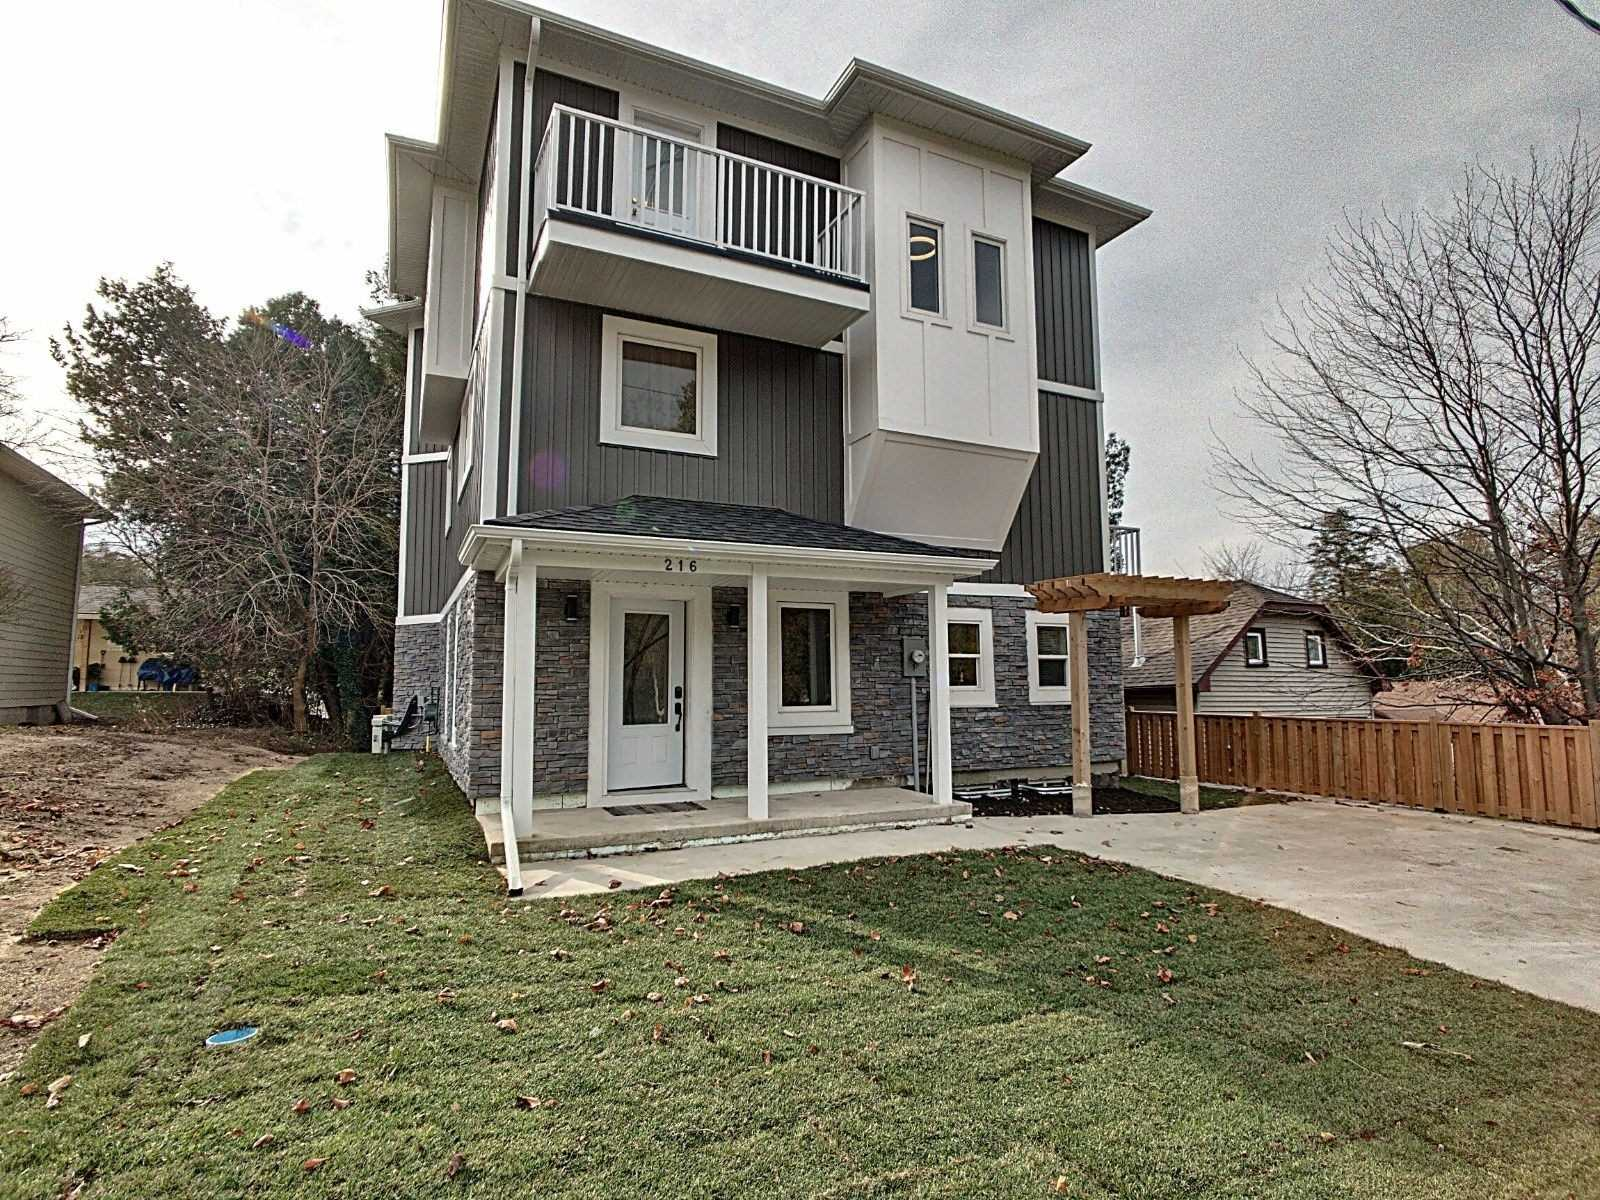 pictures of house for sale MLS: X4996671 located at 216 Elgin St, Saugeen Shores N0H2C7